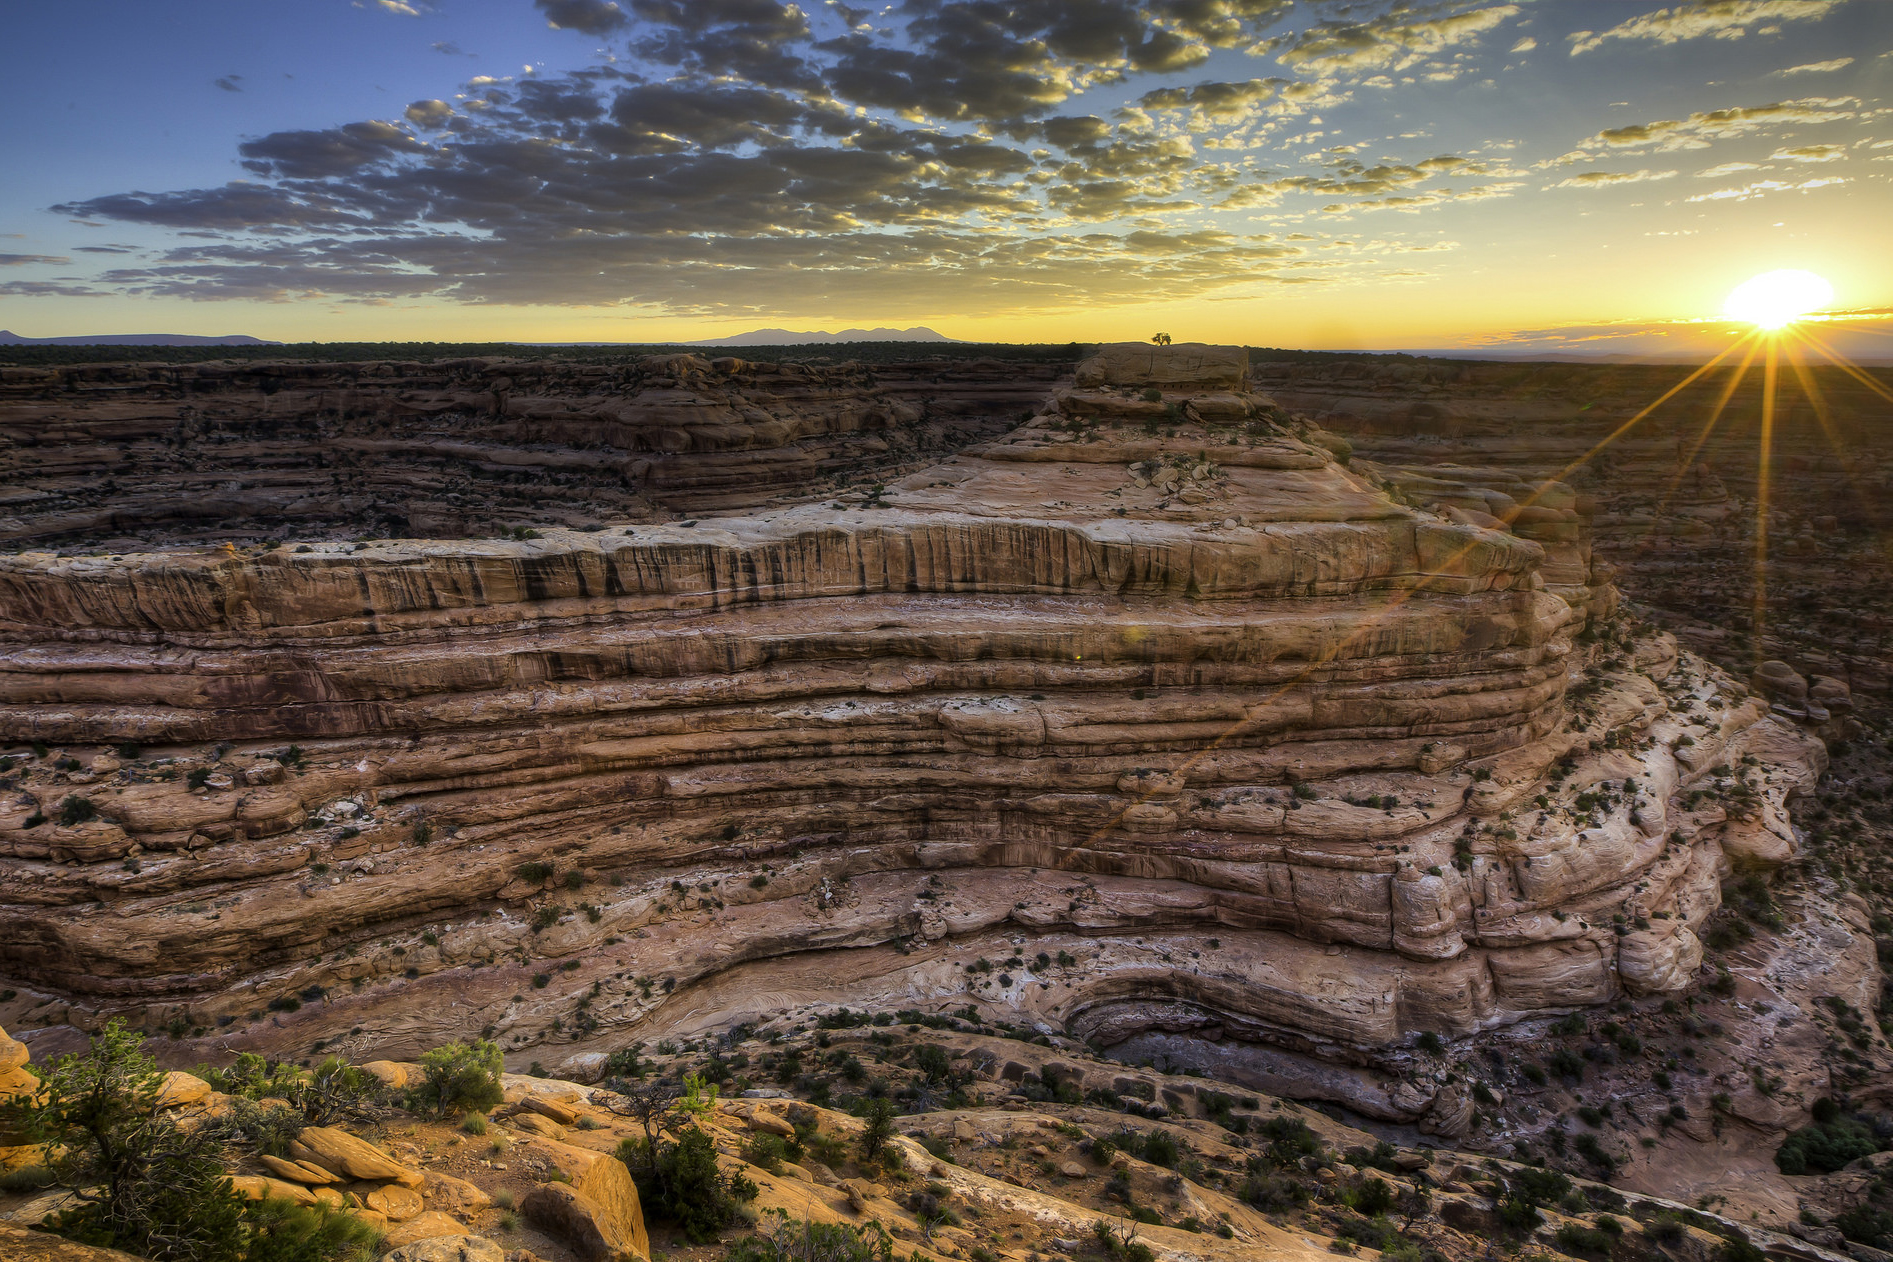 Here are five prime spots to experience Bears Ears, suitable for moderate activity up to expert-level adventures.